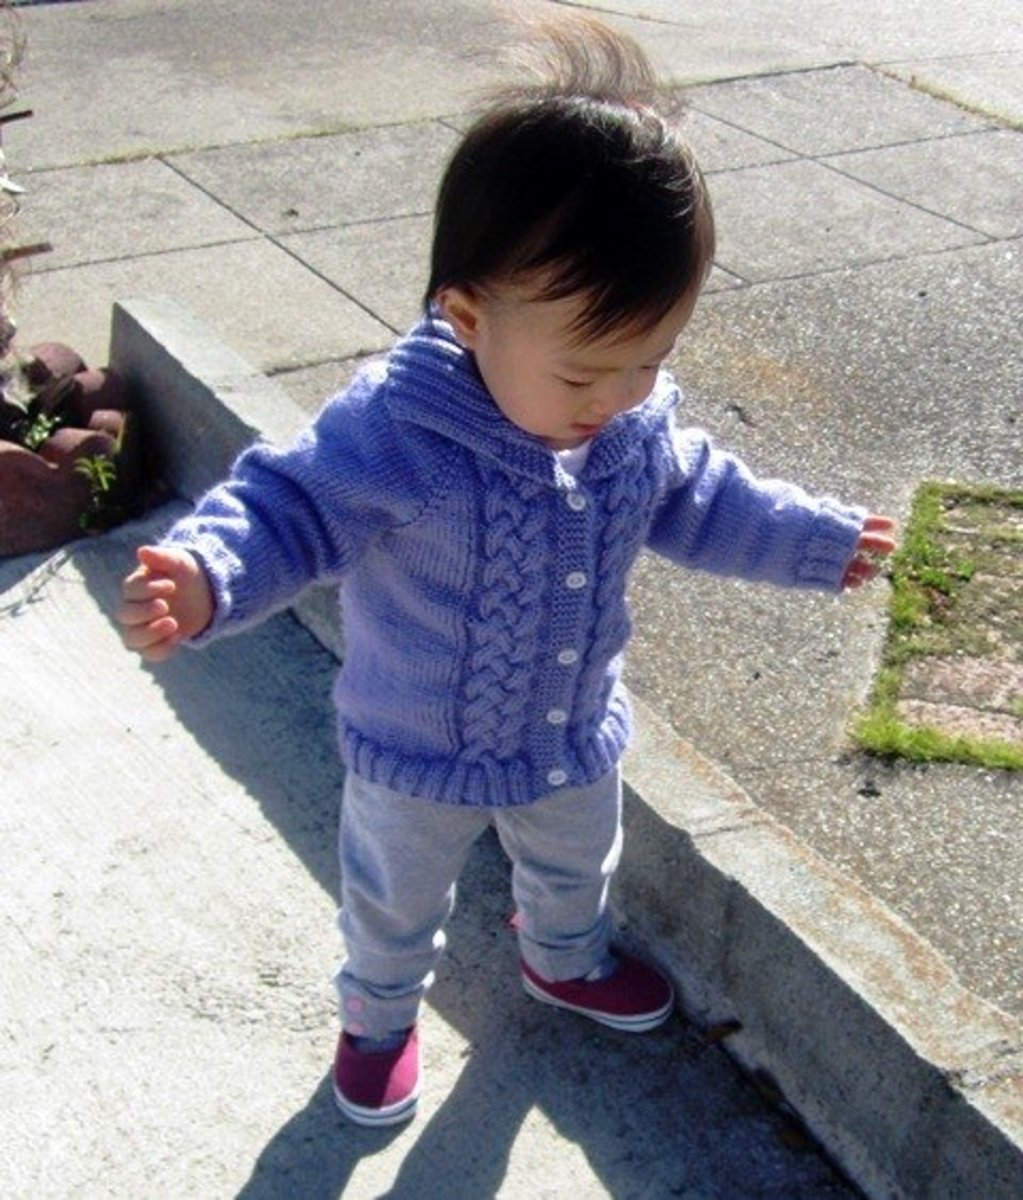 Free Knitting Pattern Baby Cable Cardigan : Free Knitting Pattern Seamless Braided Cable Baby Sweater ...